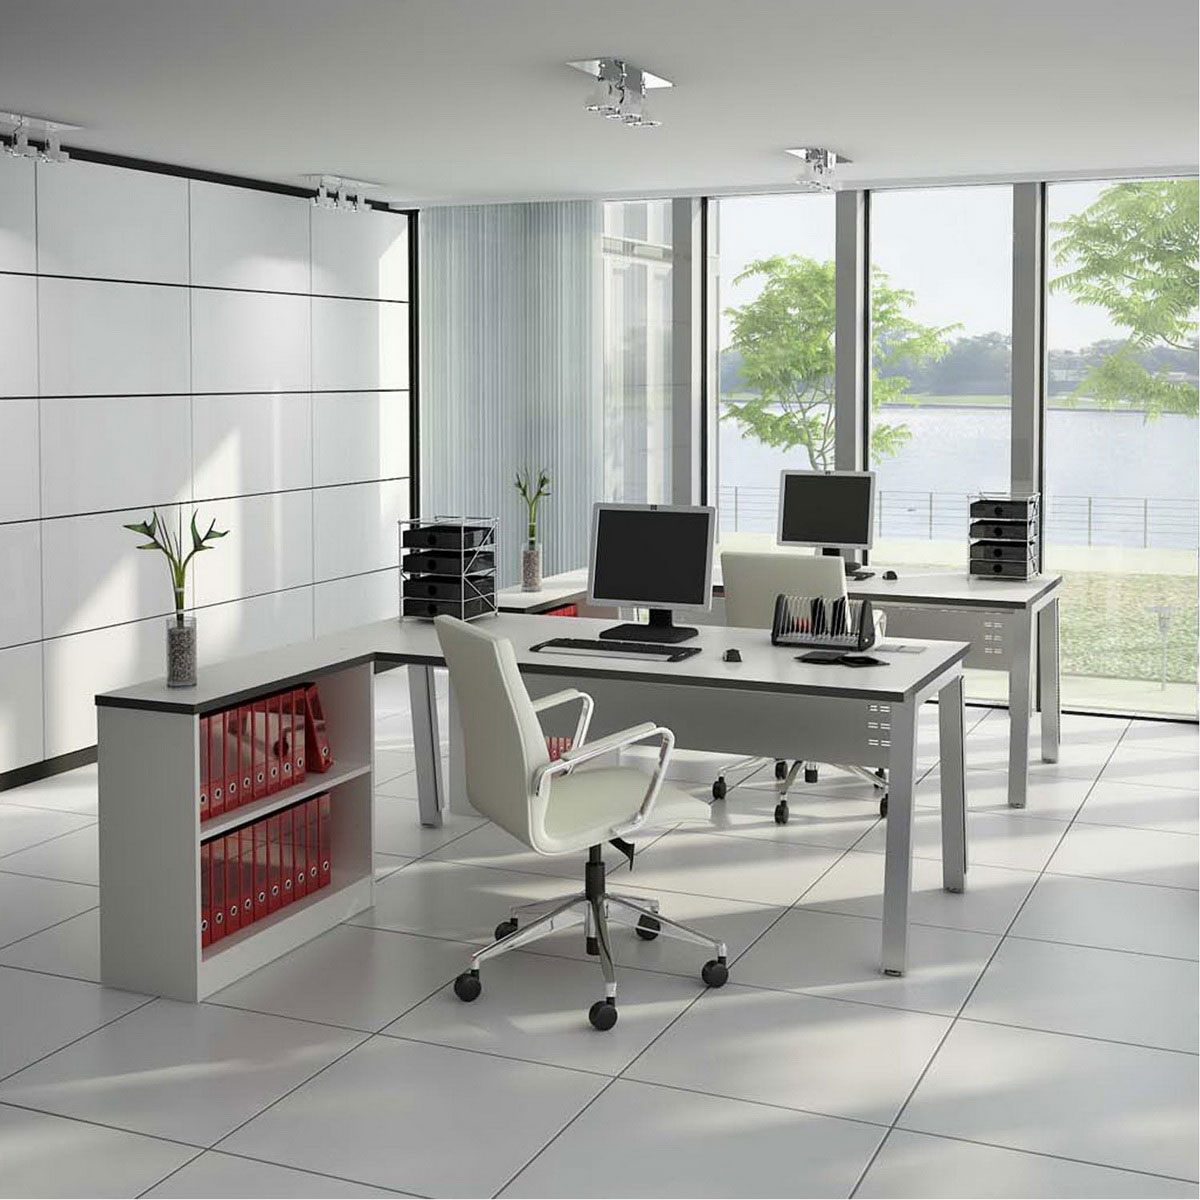 Office interior design dreams house furniture Home office design images